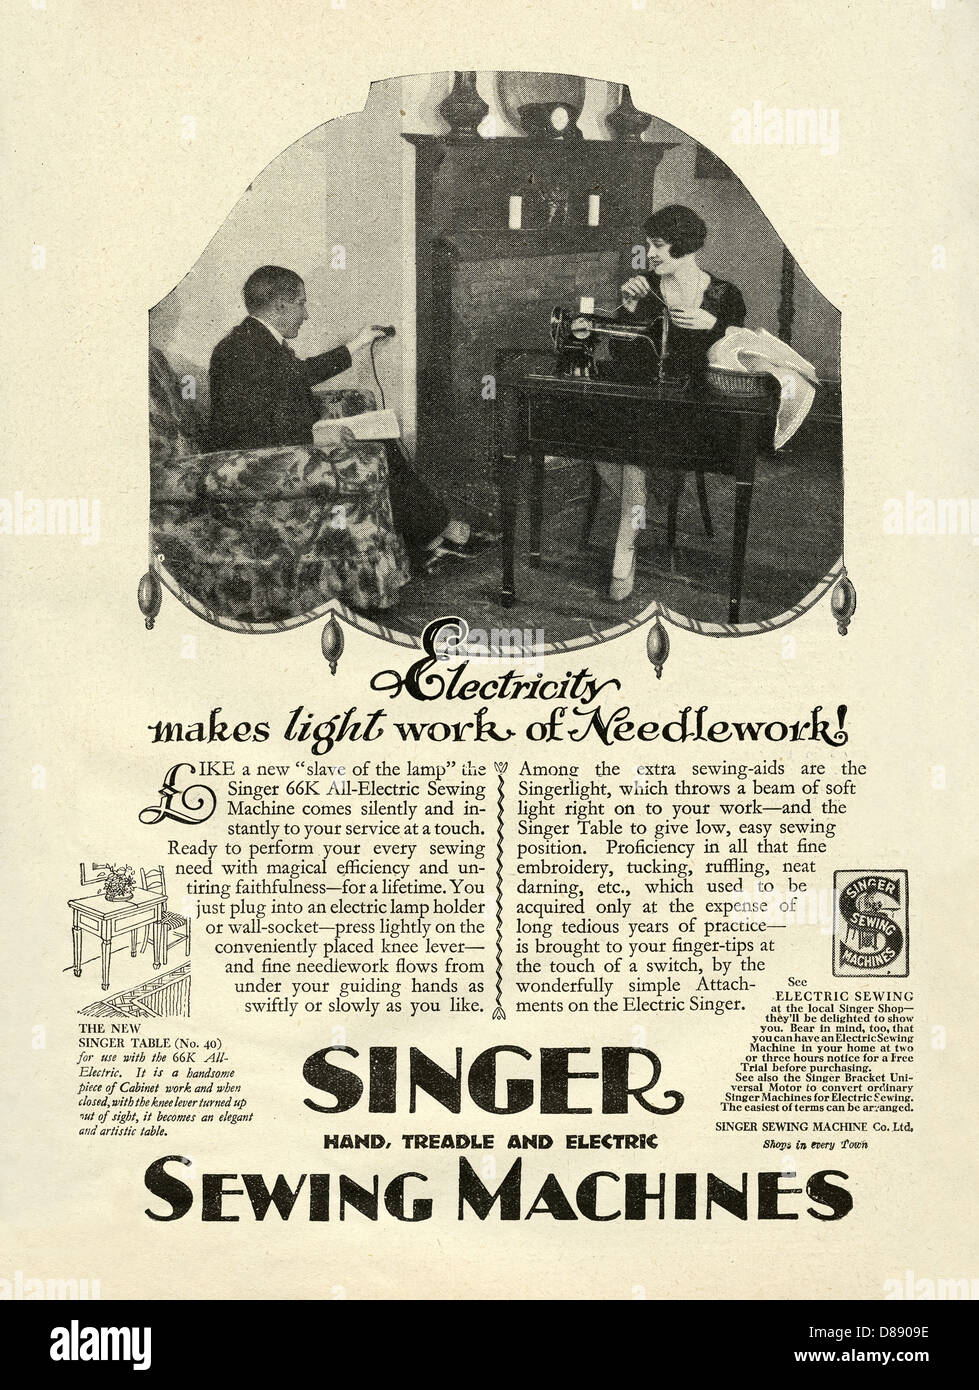 Singer Treadle Sewing Machine Stock Photos & Singer Treadle